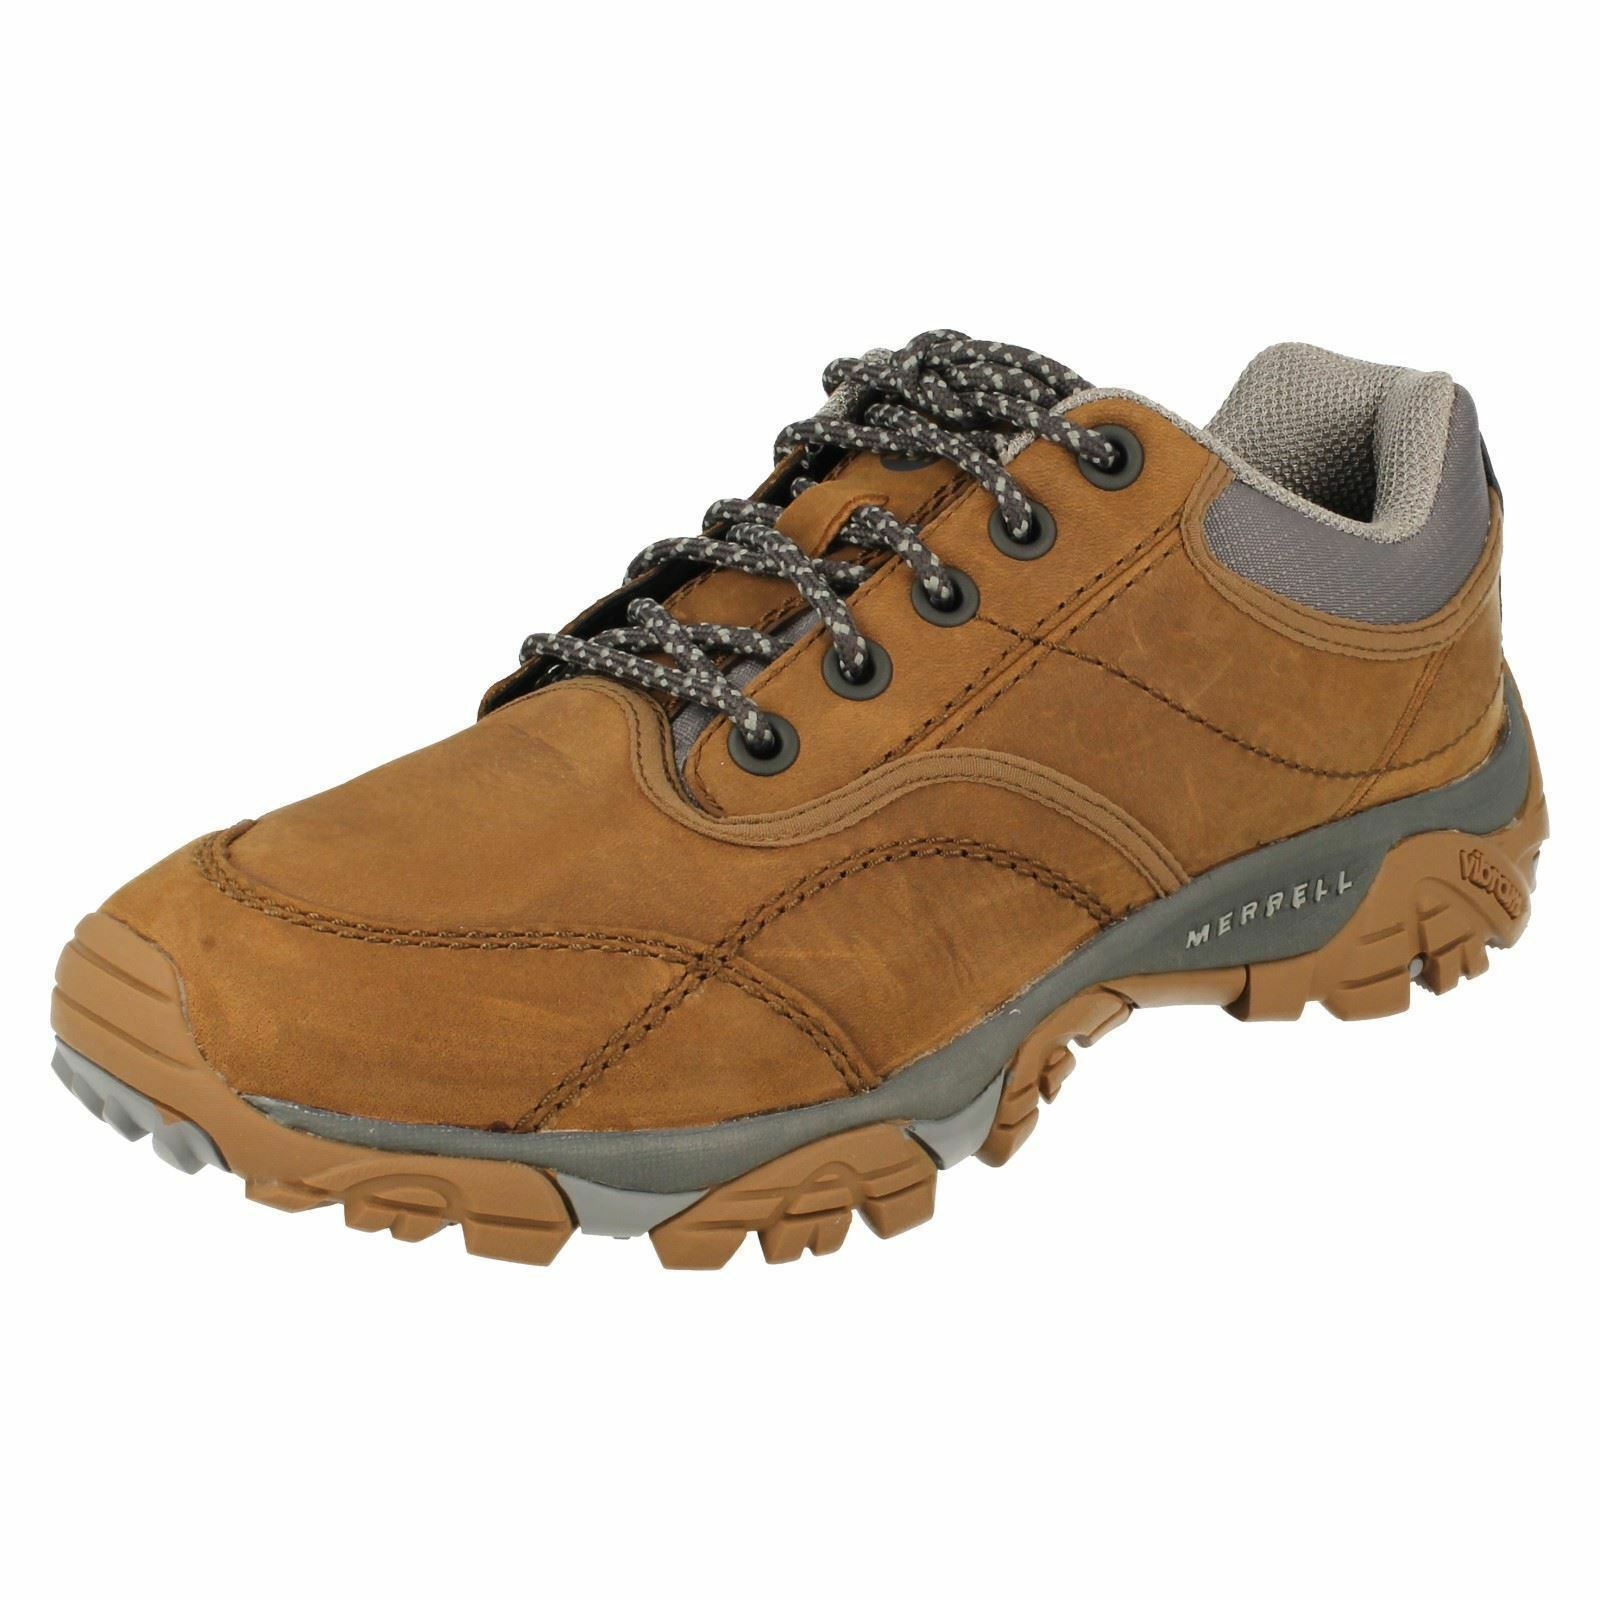 hommes MOAB ROVER - J71011 - Tan Lace Up Trainer Trainer Up by Merrell - Retail Price: £75.00 89a03d